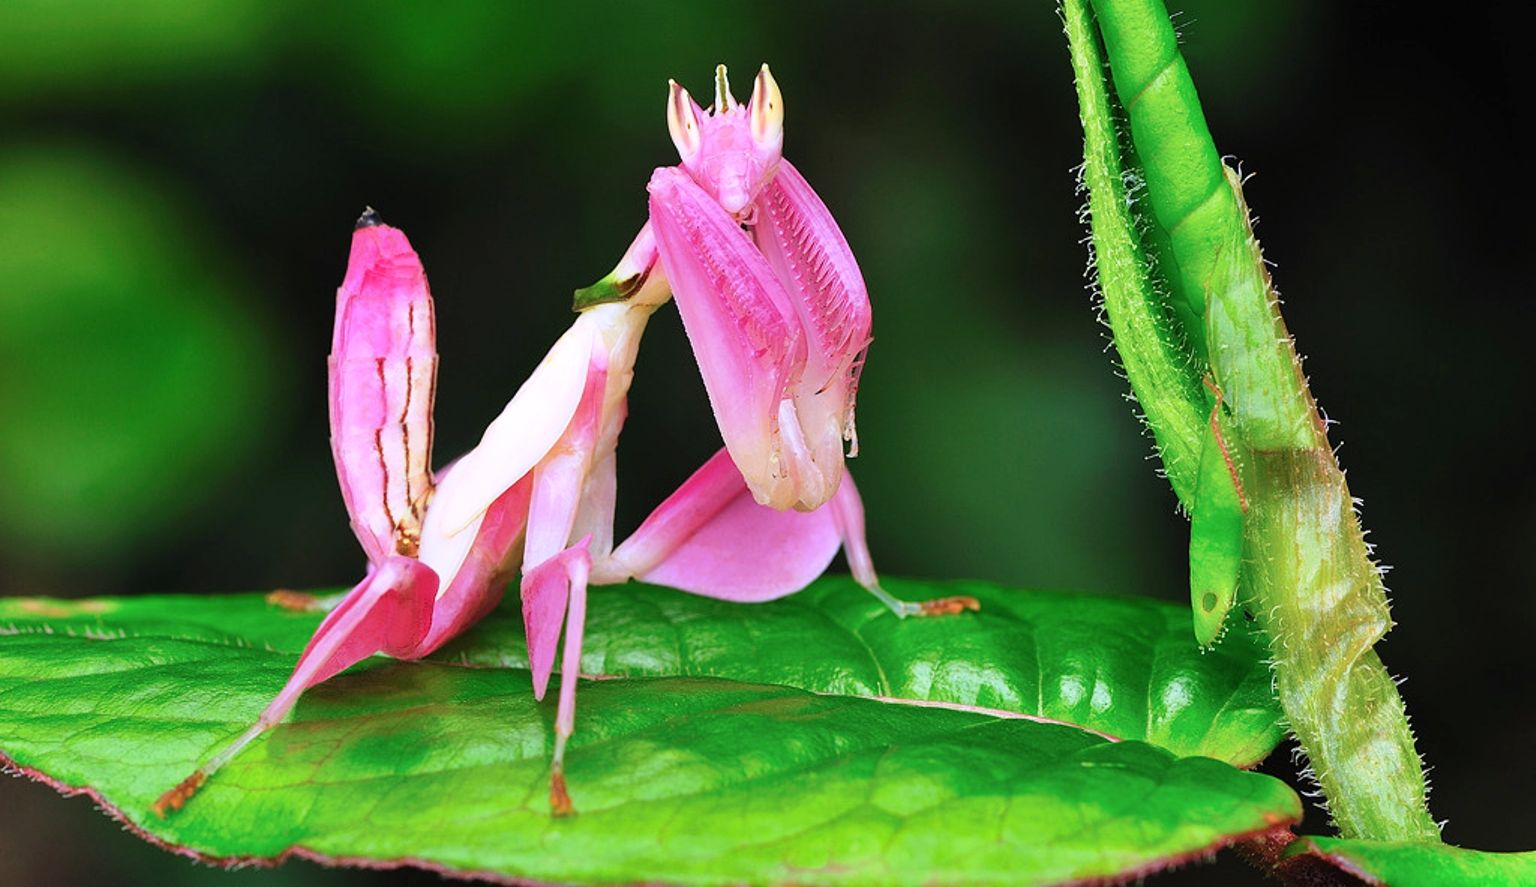 Mantis orquidea hymenopus coronatus mantis santa teresas it is known by various common names including the walking flower mantis or the orchid mantis dhlflorist Image collections